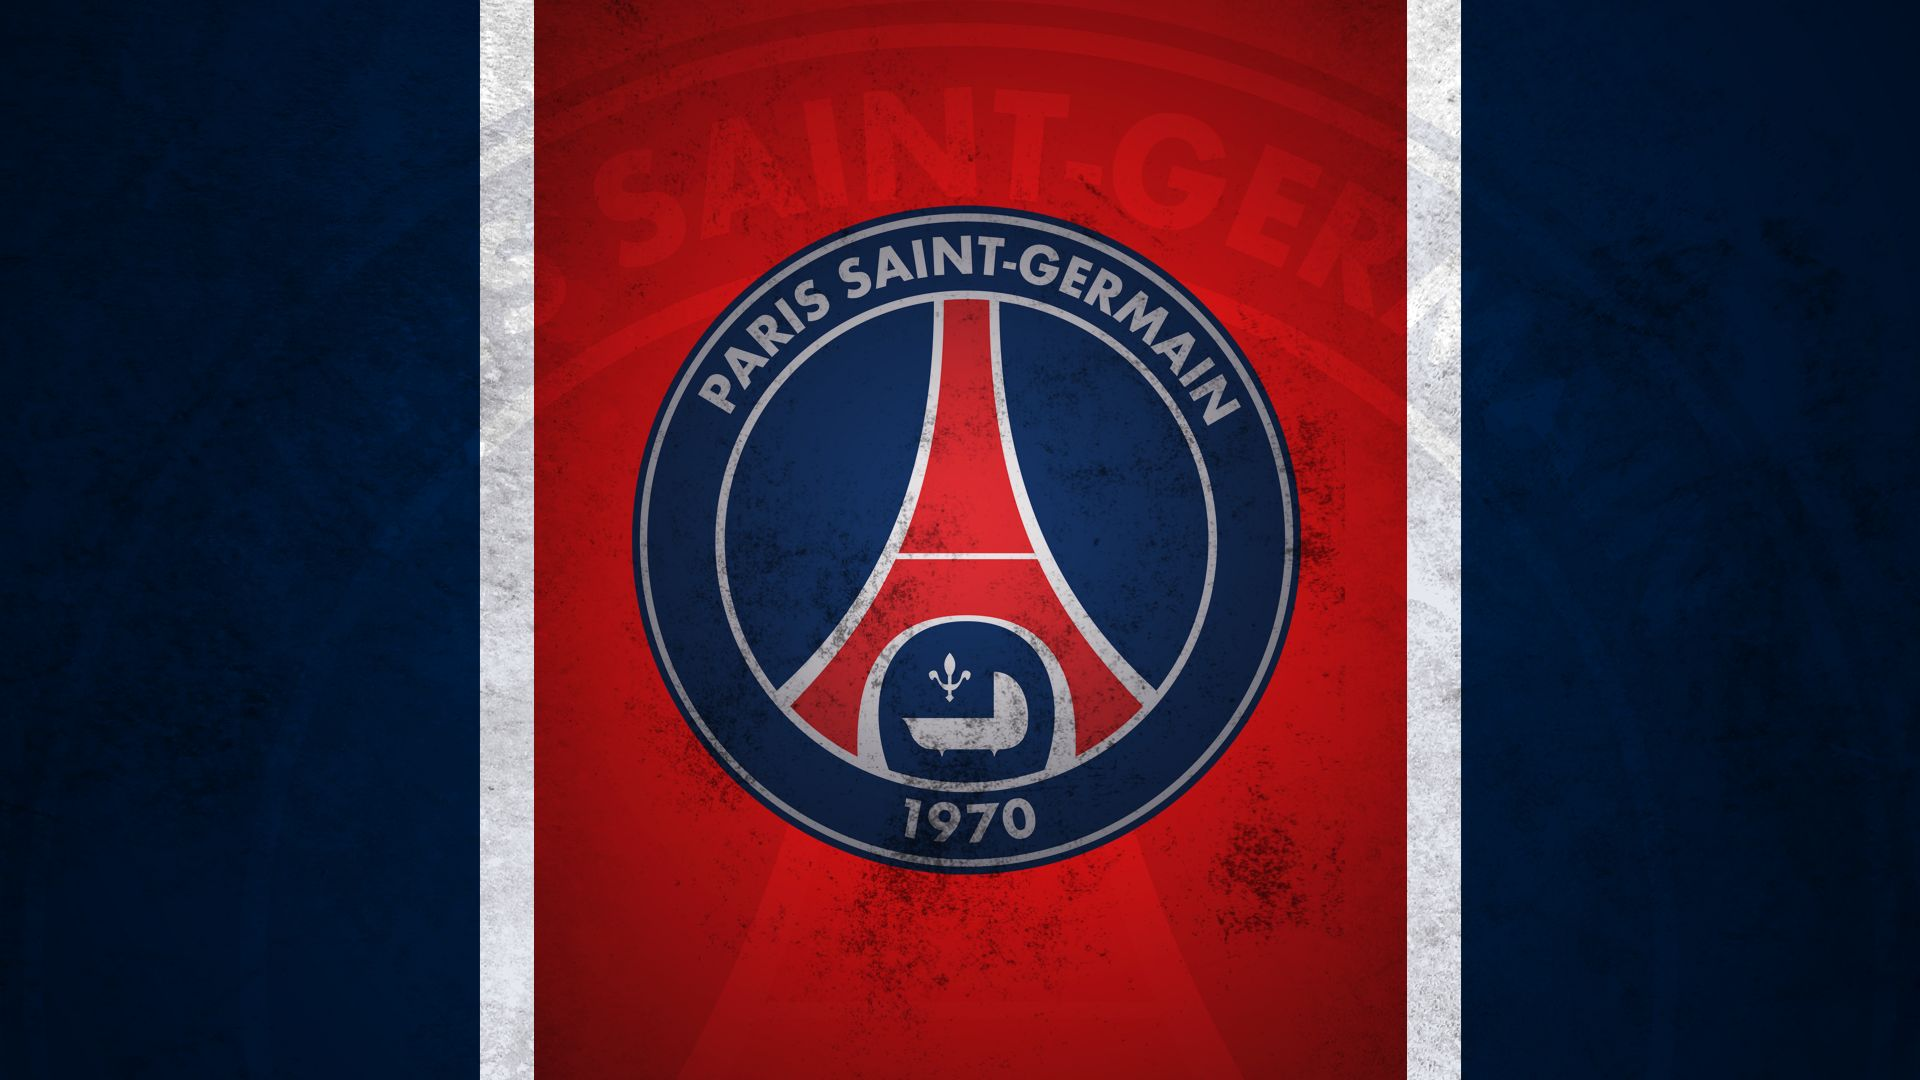 1920x1080 - Paris Saint-Germain F.C. Wallpapers 10